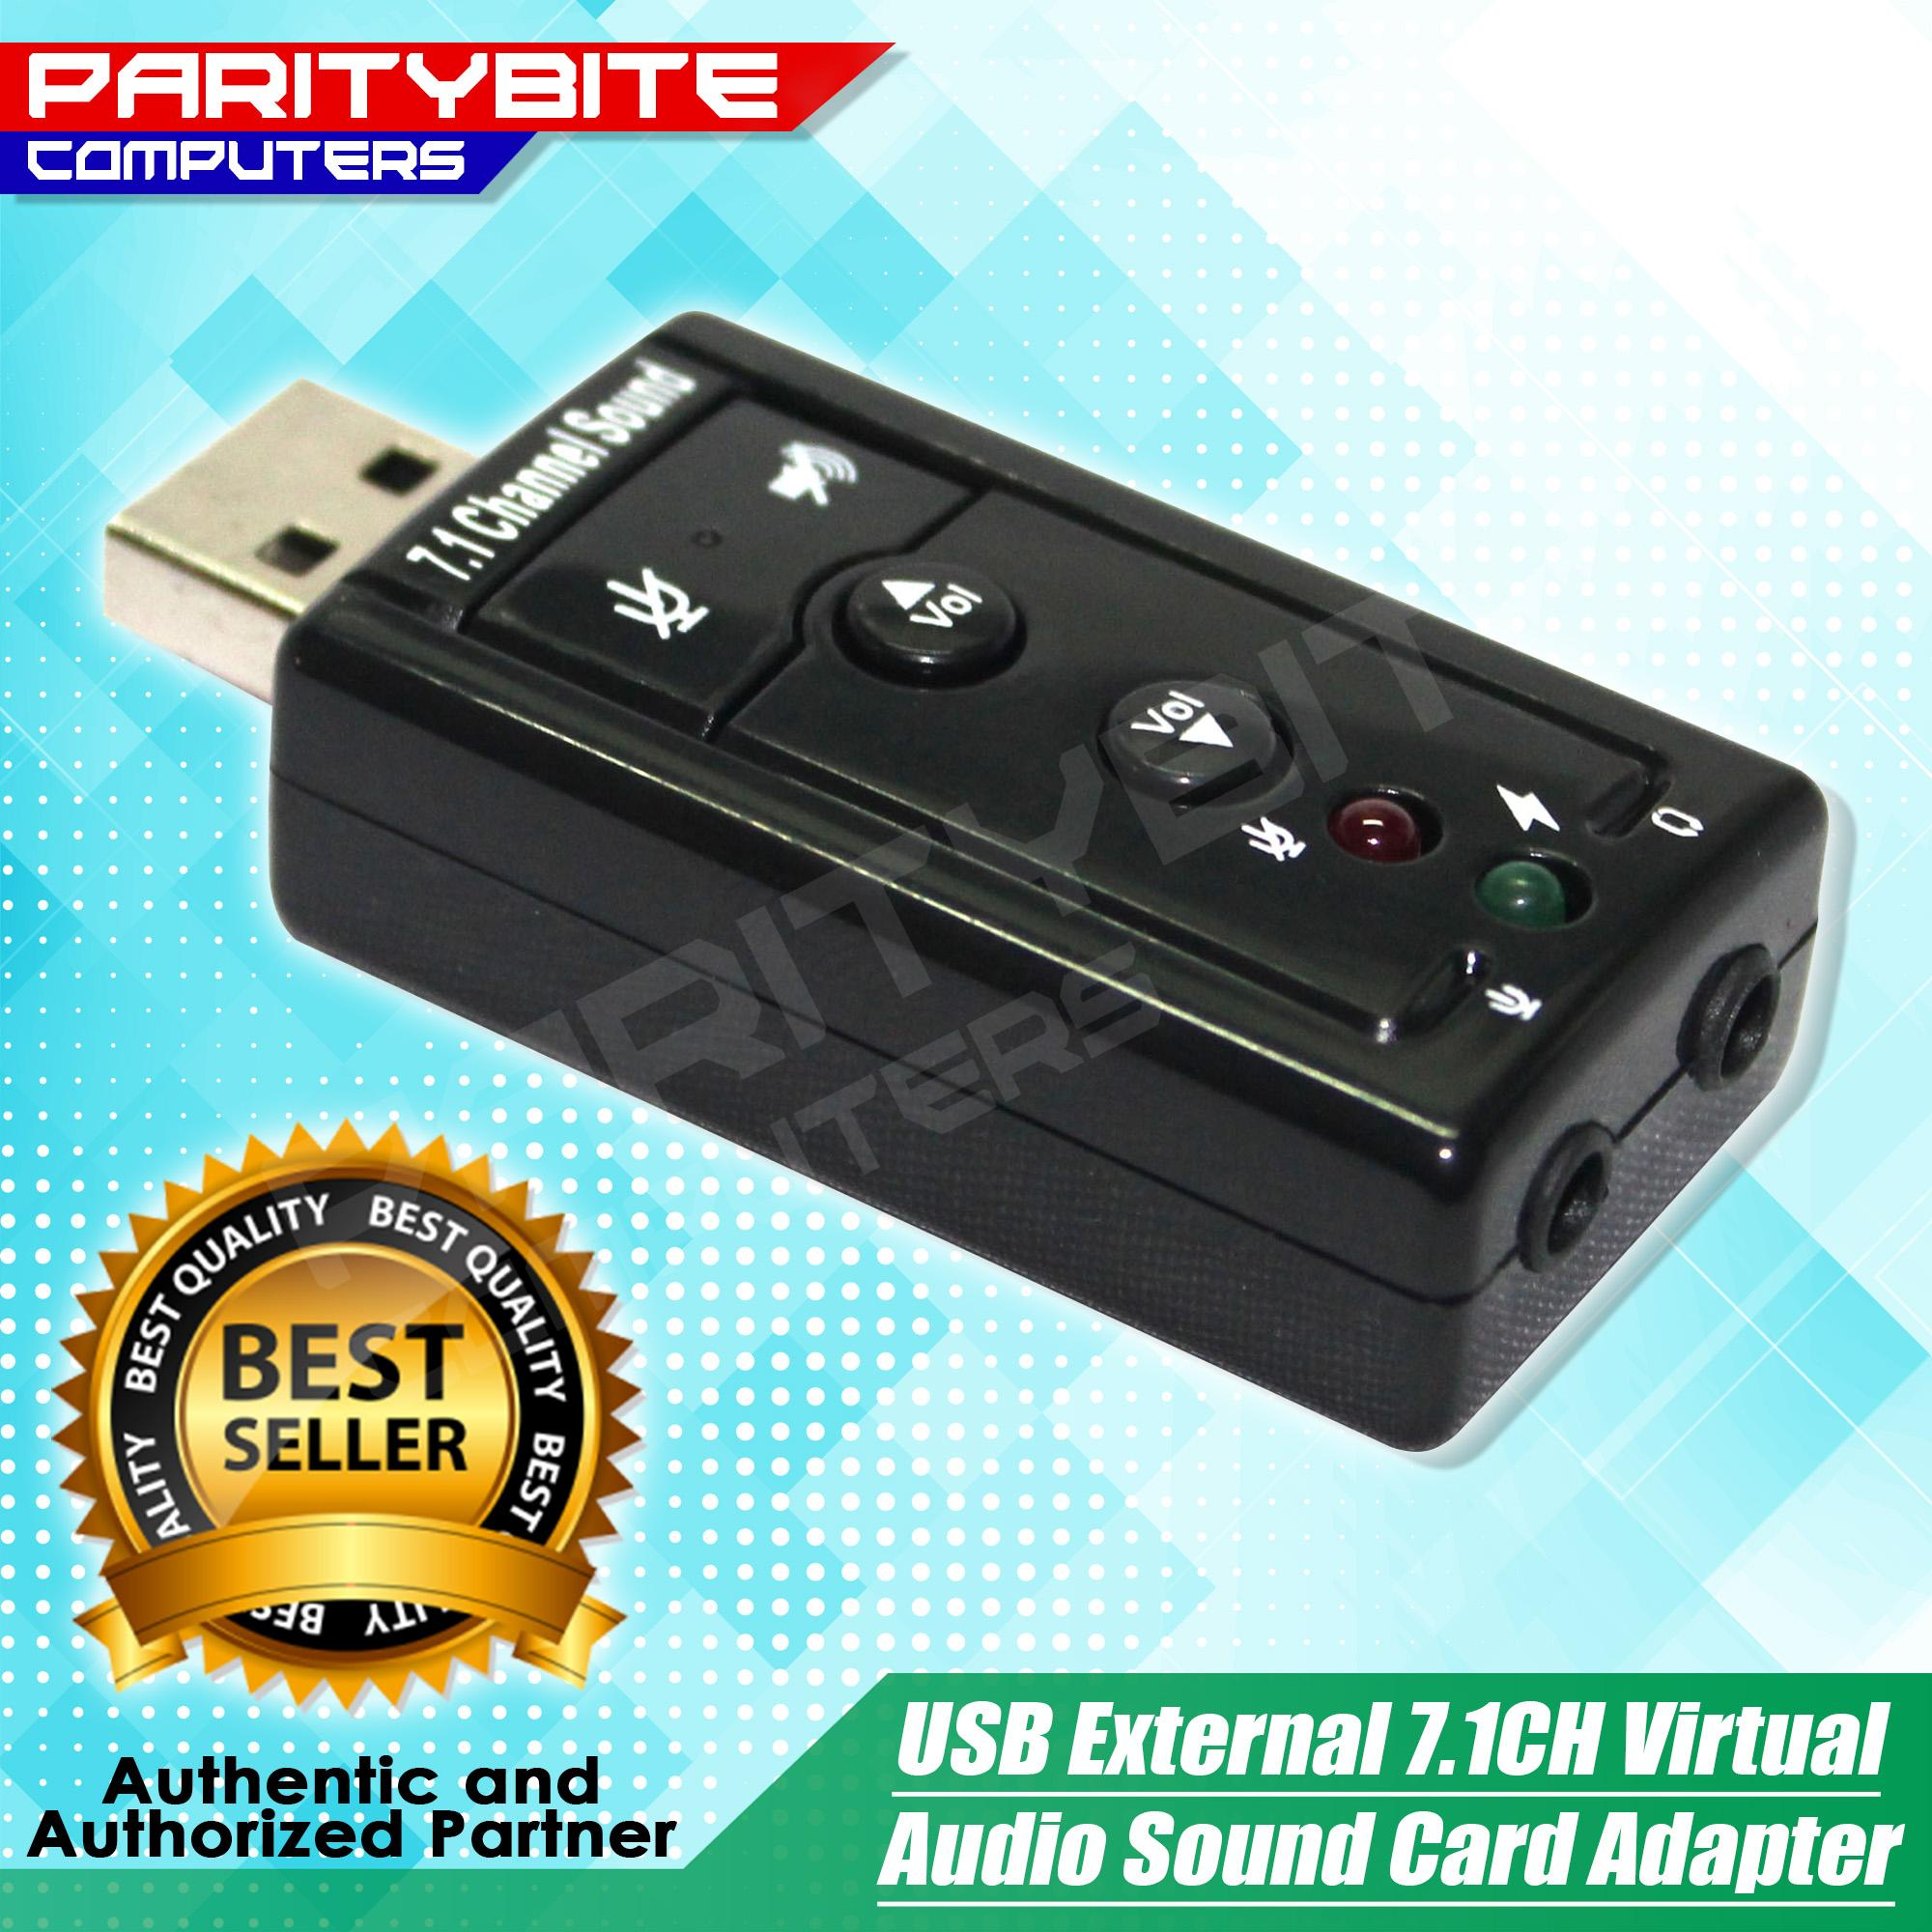 Usb External 7.1ch Virtual Audio Sound Card Adapter By Paritybite Computers.